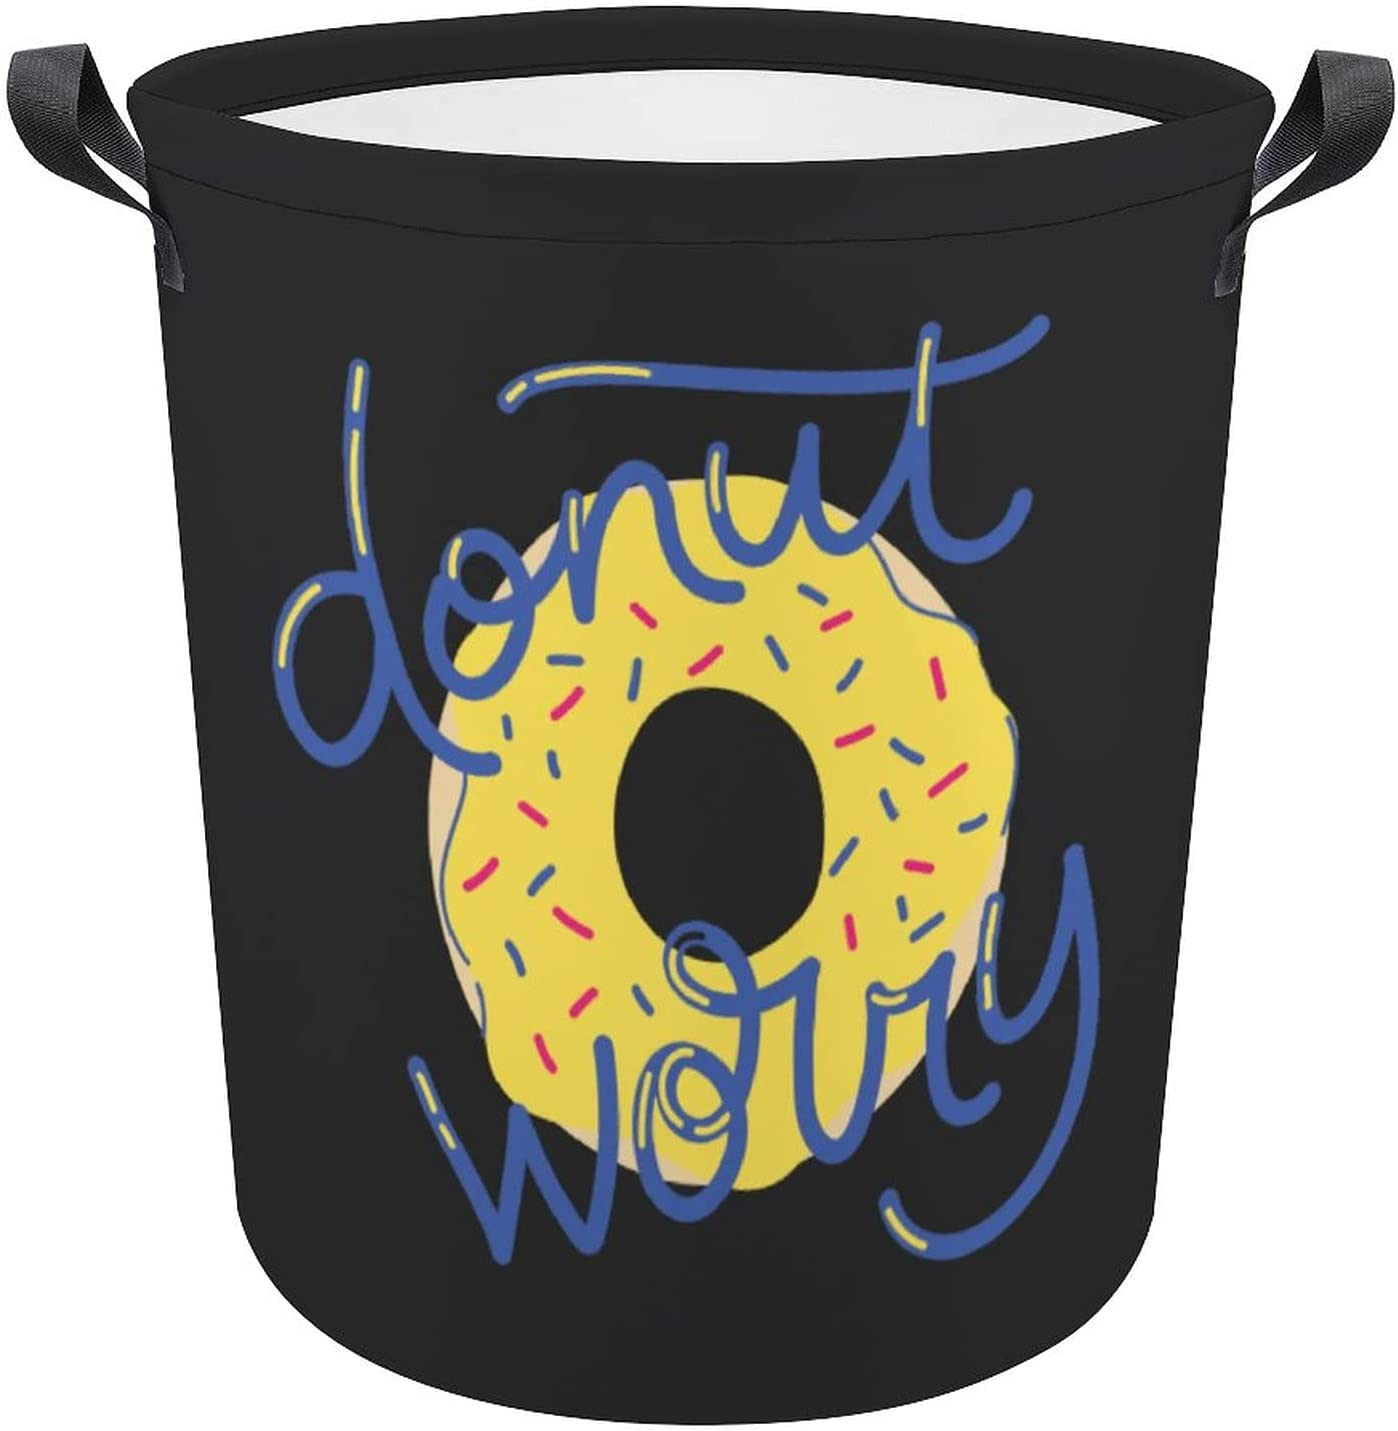 Donut Don't Worry Phoenix Mall New mail order Humor Funny Gift Oxford Hamper Quotes Laundry